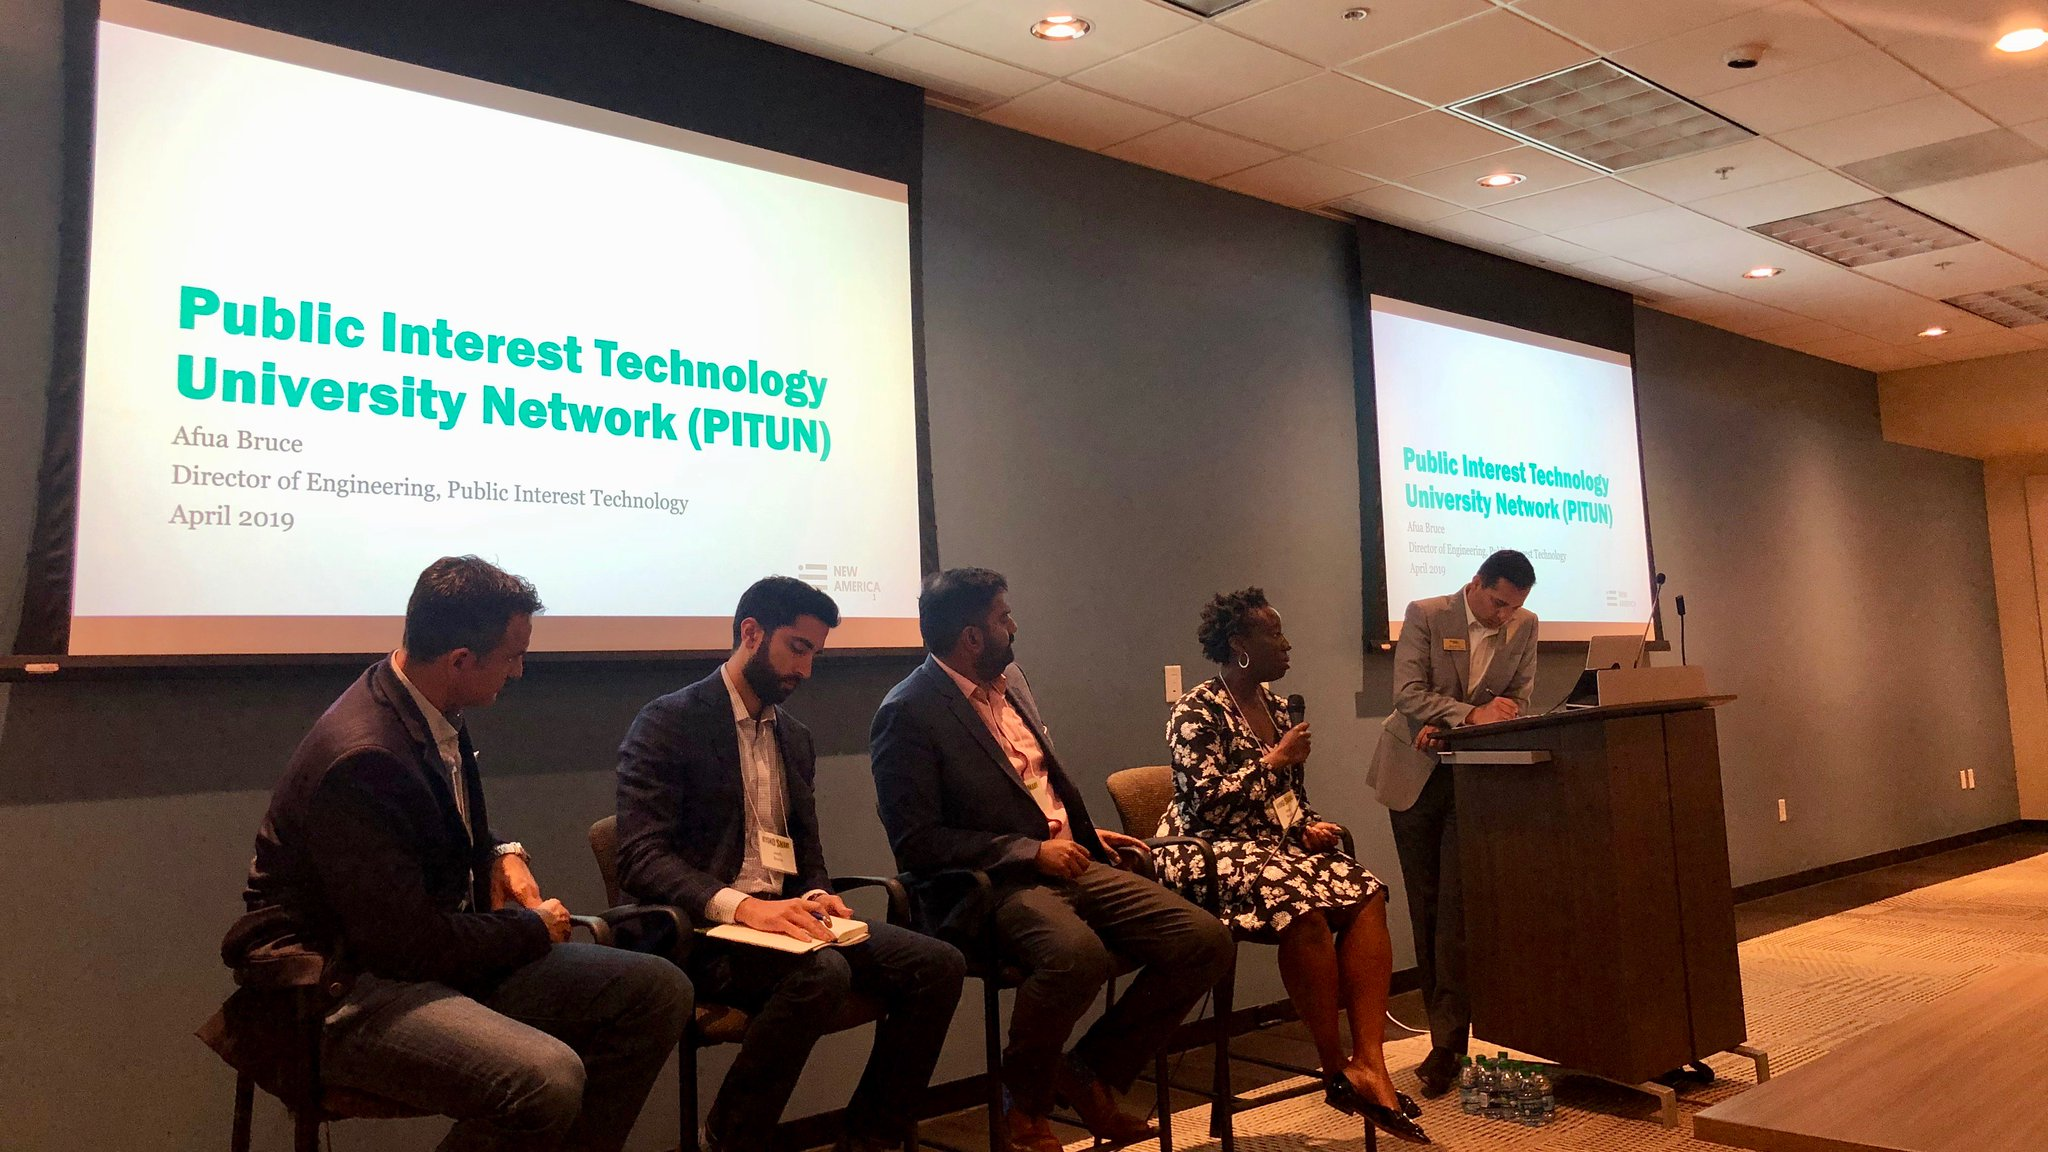 Next, @afua_bruce presents about the Public Interest Technology Network (PITN), which was formed to bring together technology design & policy across a cross-section of Universities HT @NewAmericaPIT #beyondsmart https://t.co/L0yPiS1JCj